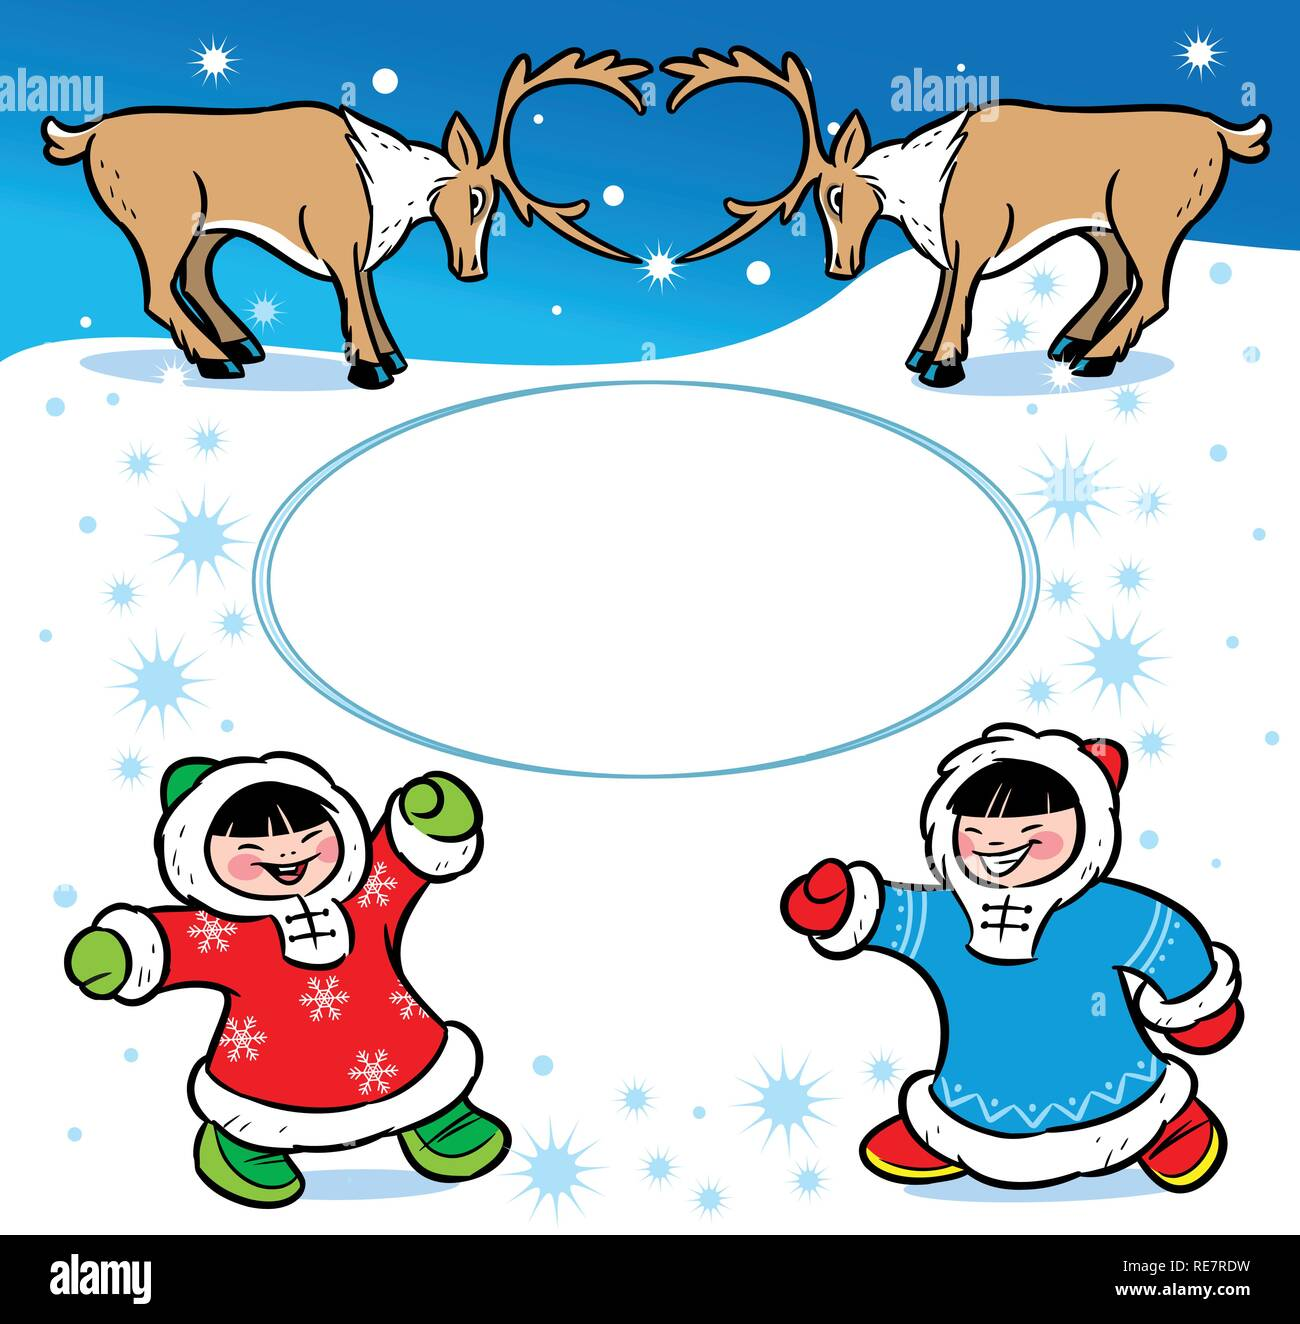 The picture shows children dressed in ethnic attire.They are having fun on the white snow.Near them are reindeer.Illustration done in cartoon style Stock Vector